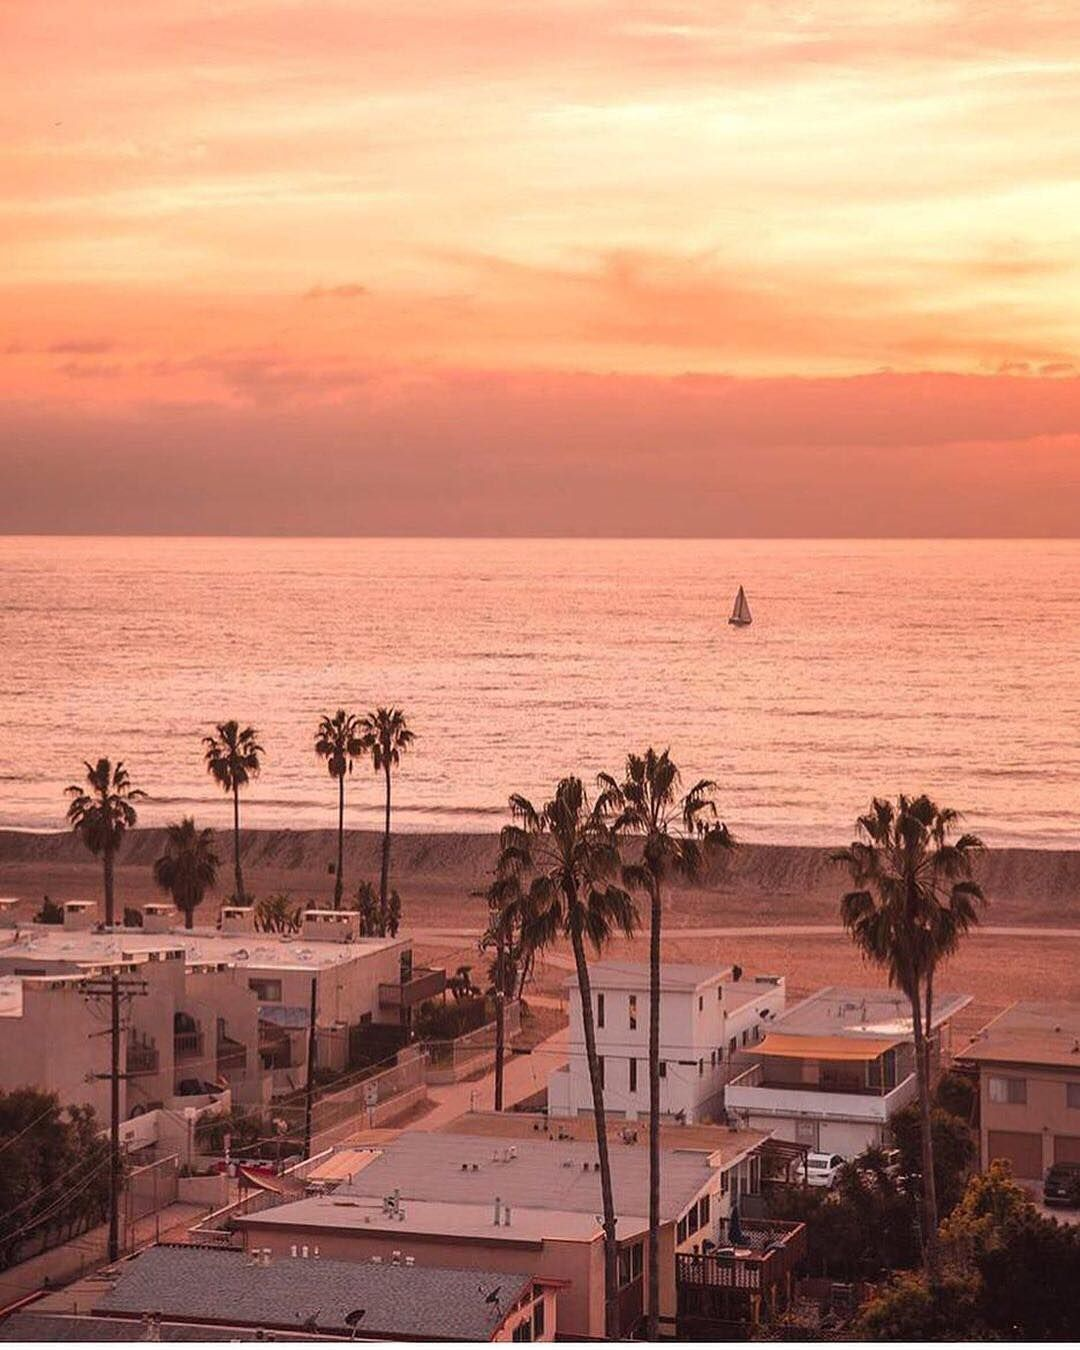 Venice Views At Hgak To End The Week How Are You Ending Yours Ambientlighting Hourglasscosmetics Regram Preset California Vibe California Sunset Scenery